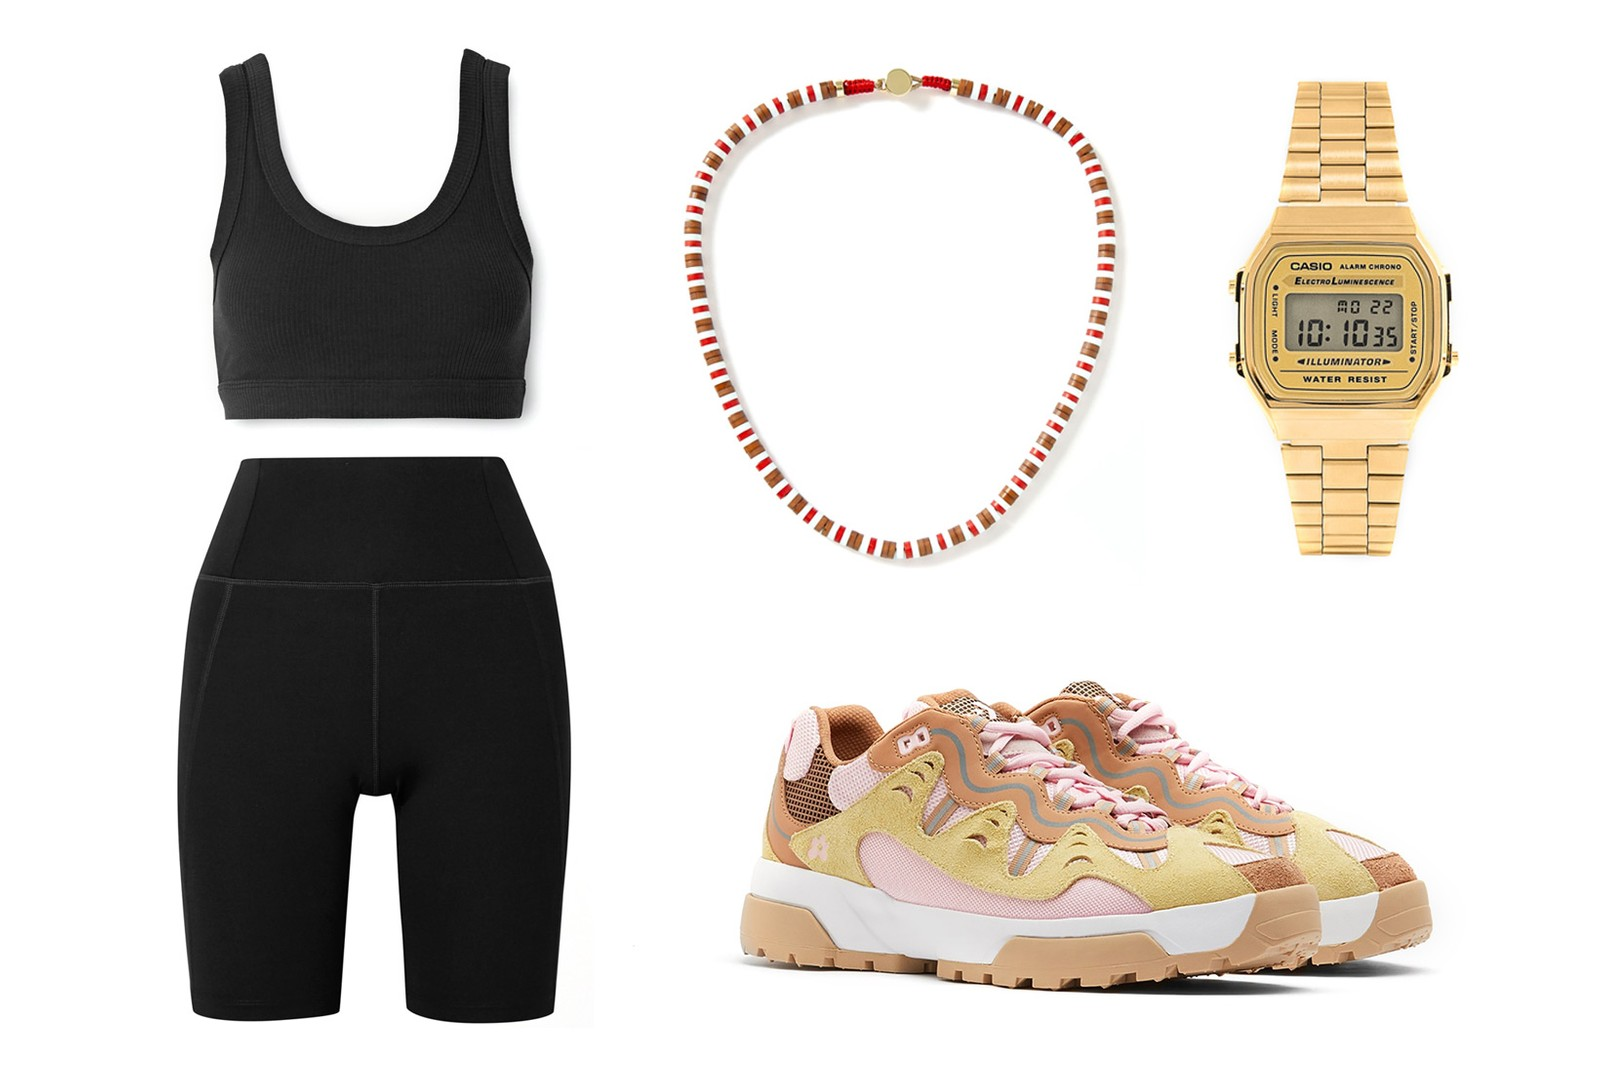 Girlfriend Collective Bike Stretch Shorts Alo Yoga Wellness Ribbed Stretch Sports Bra Roxanne Assoulin U Tube Wood Necklace GOLF le FLEUR Converse Gianno Ox Parfait Pink Casio Gold Watch